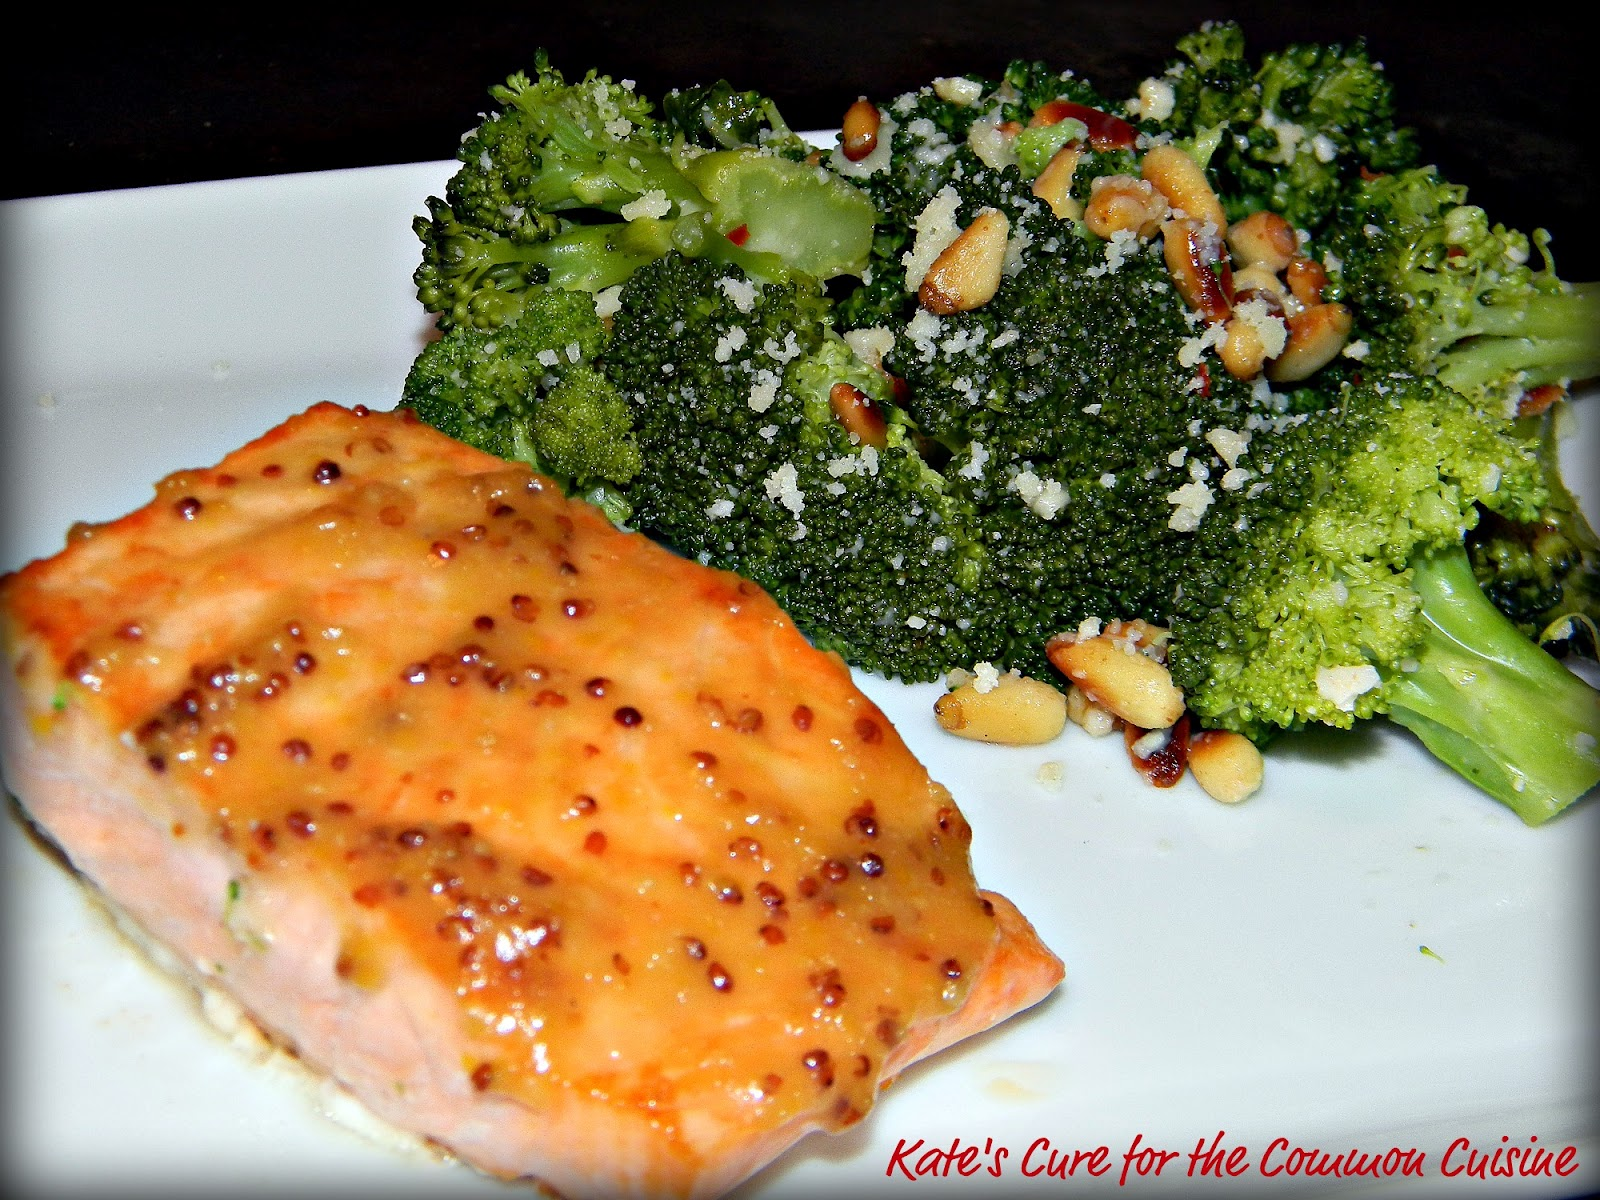 Kate's Cure for the Common Cuisine: Miso-Orange Glazed Fish